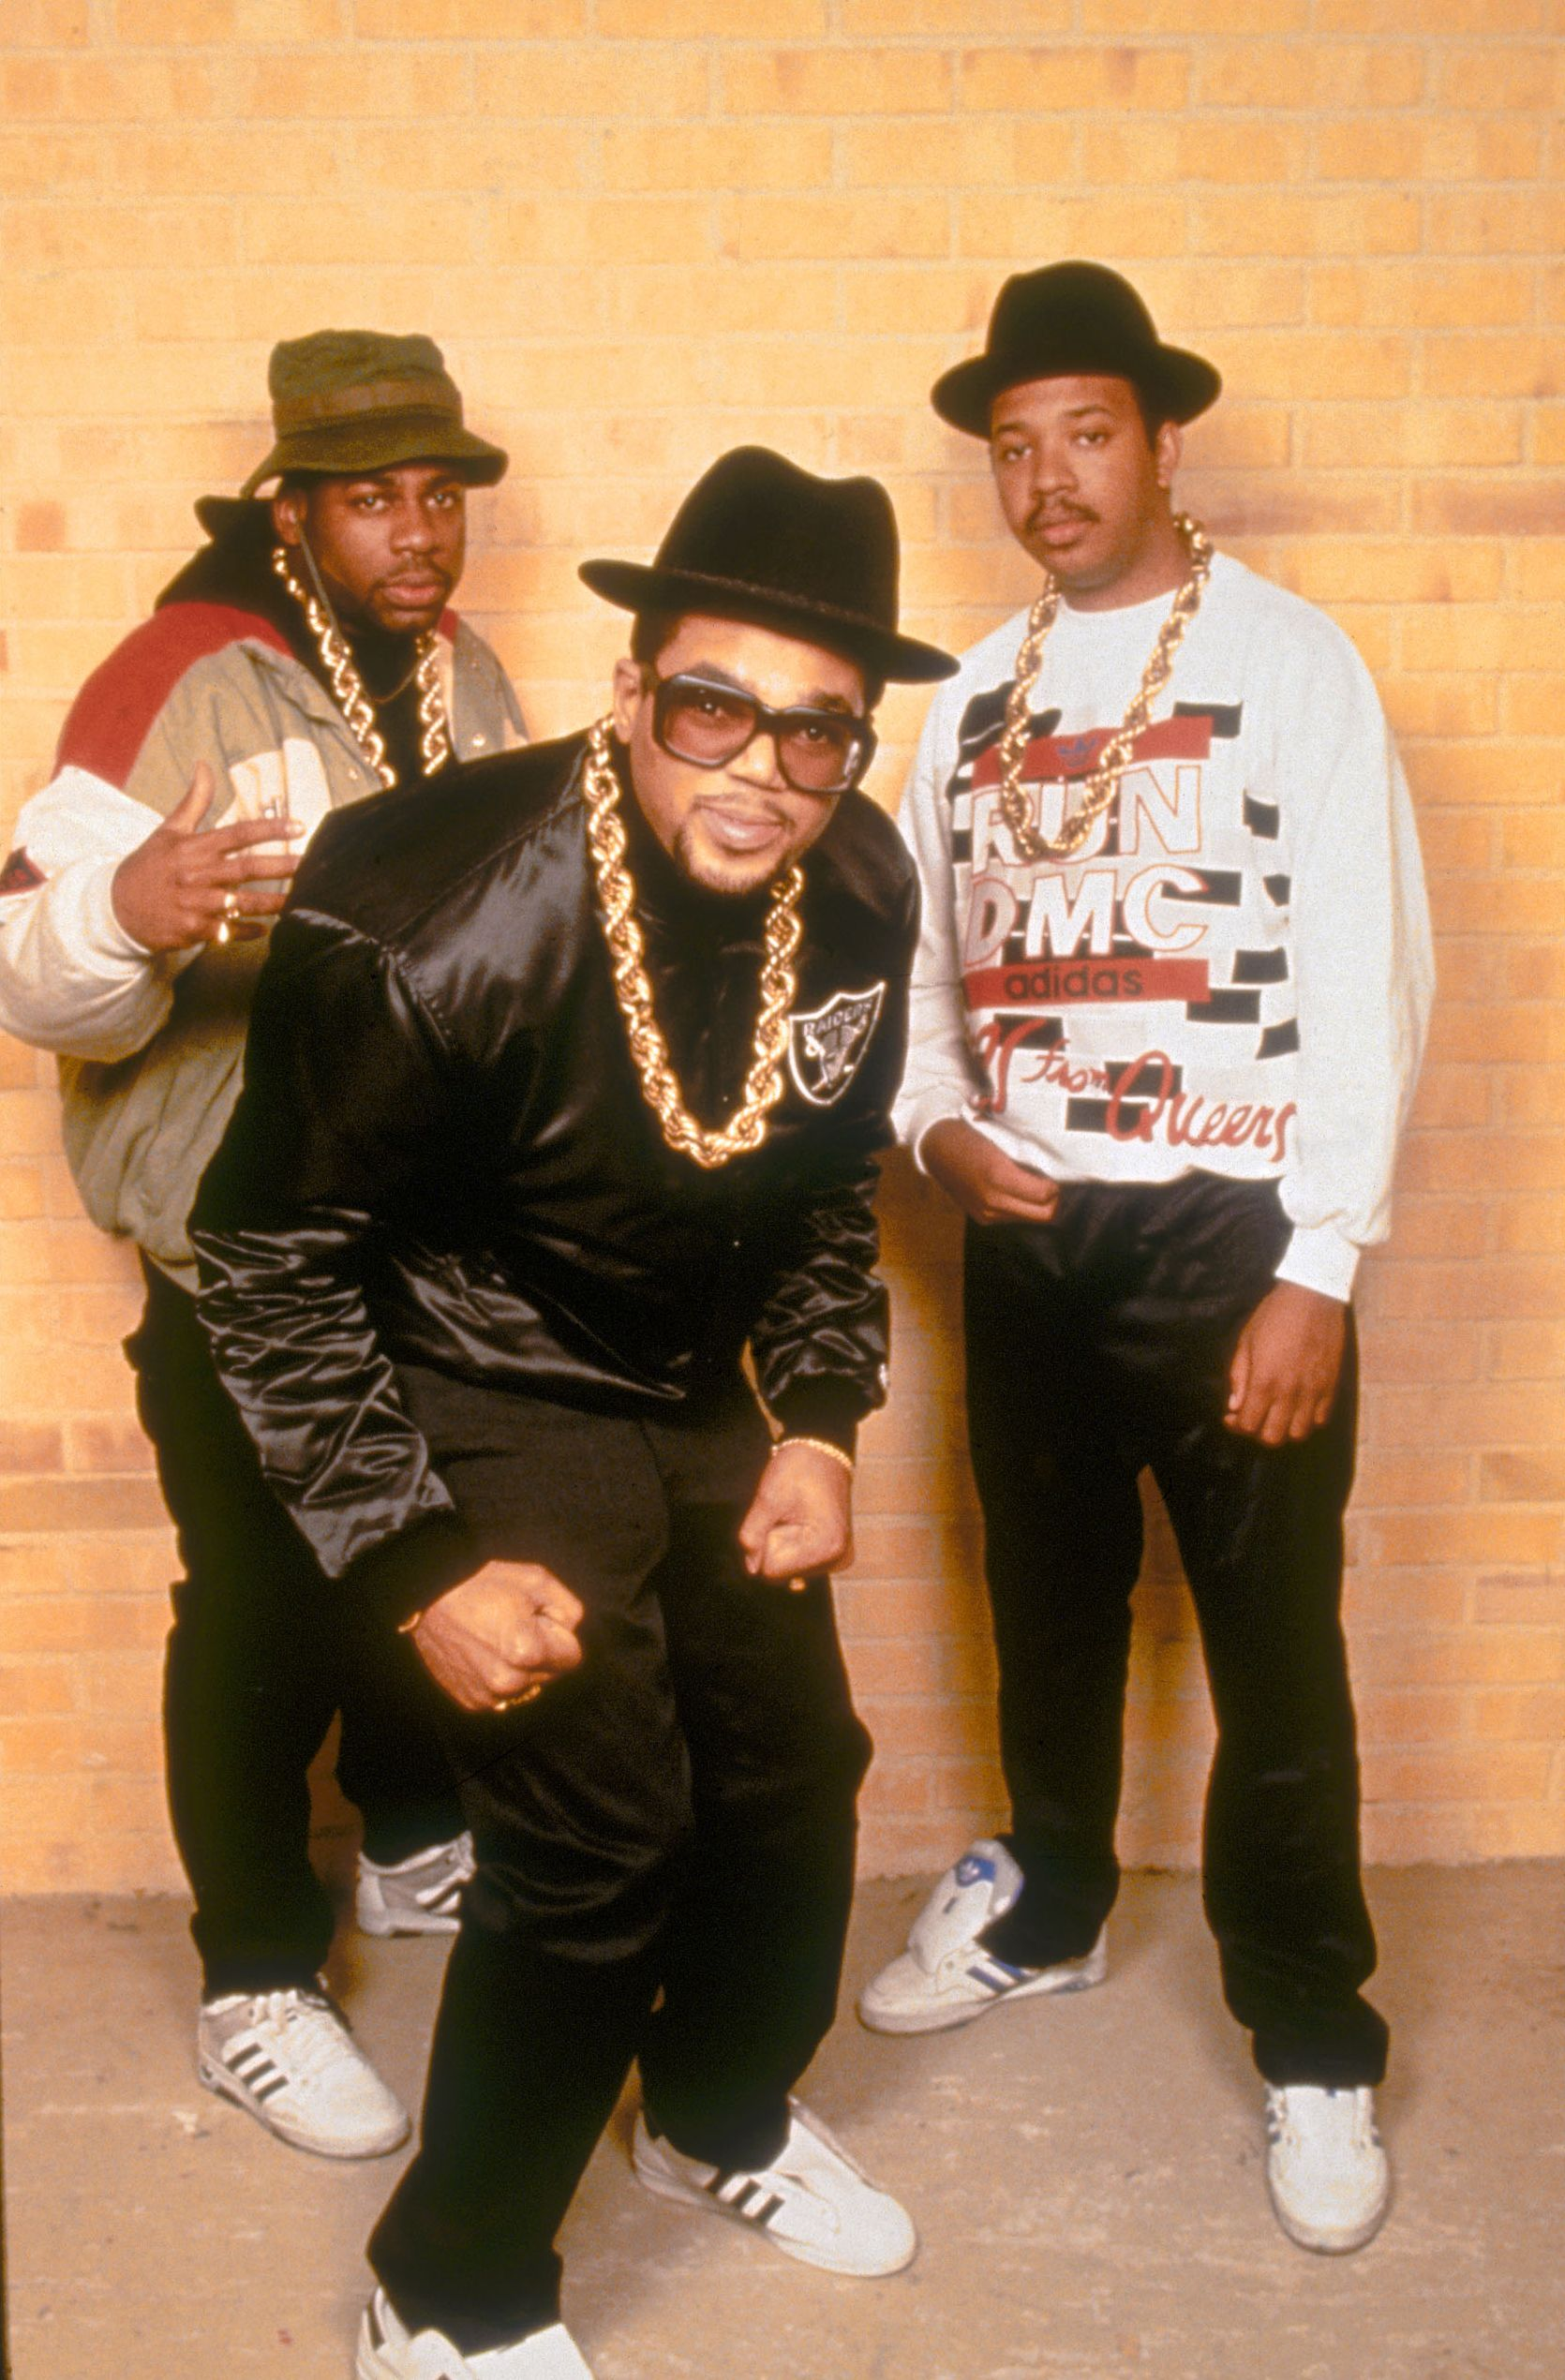 Derived from break dancers, and rap music, clothing from this style tribe  consisted of baggy pants, oversized shirts, and high running shoes.